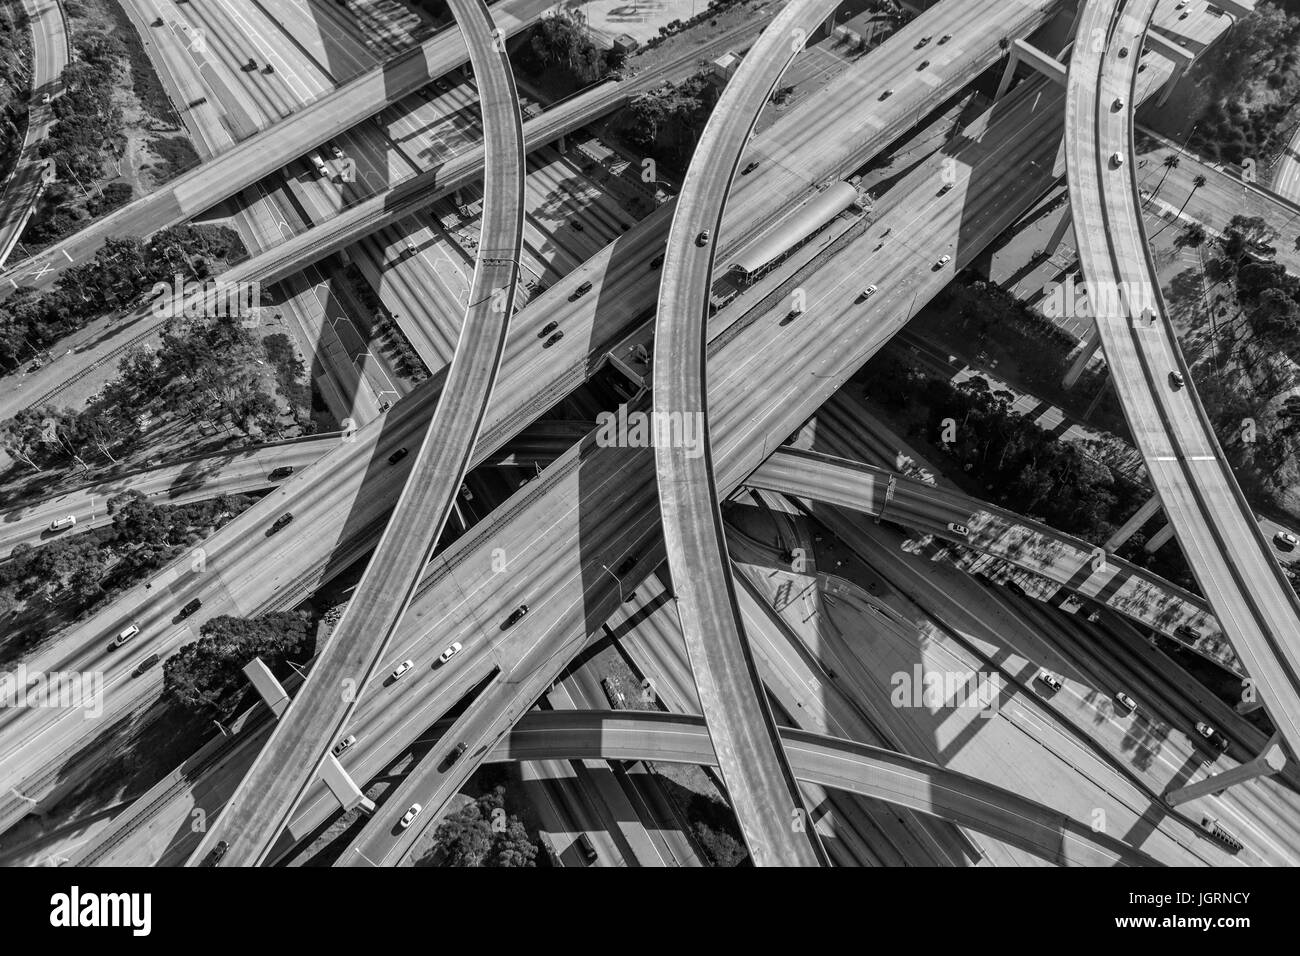 Harbor 110 and Century 105 freeway interchange aerial south of downtown Los Angeles in black and white. - Stock Image